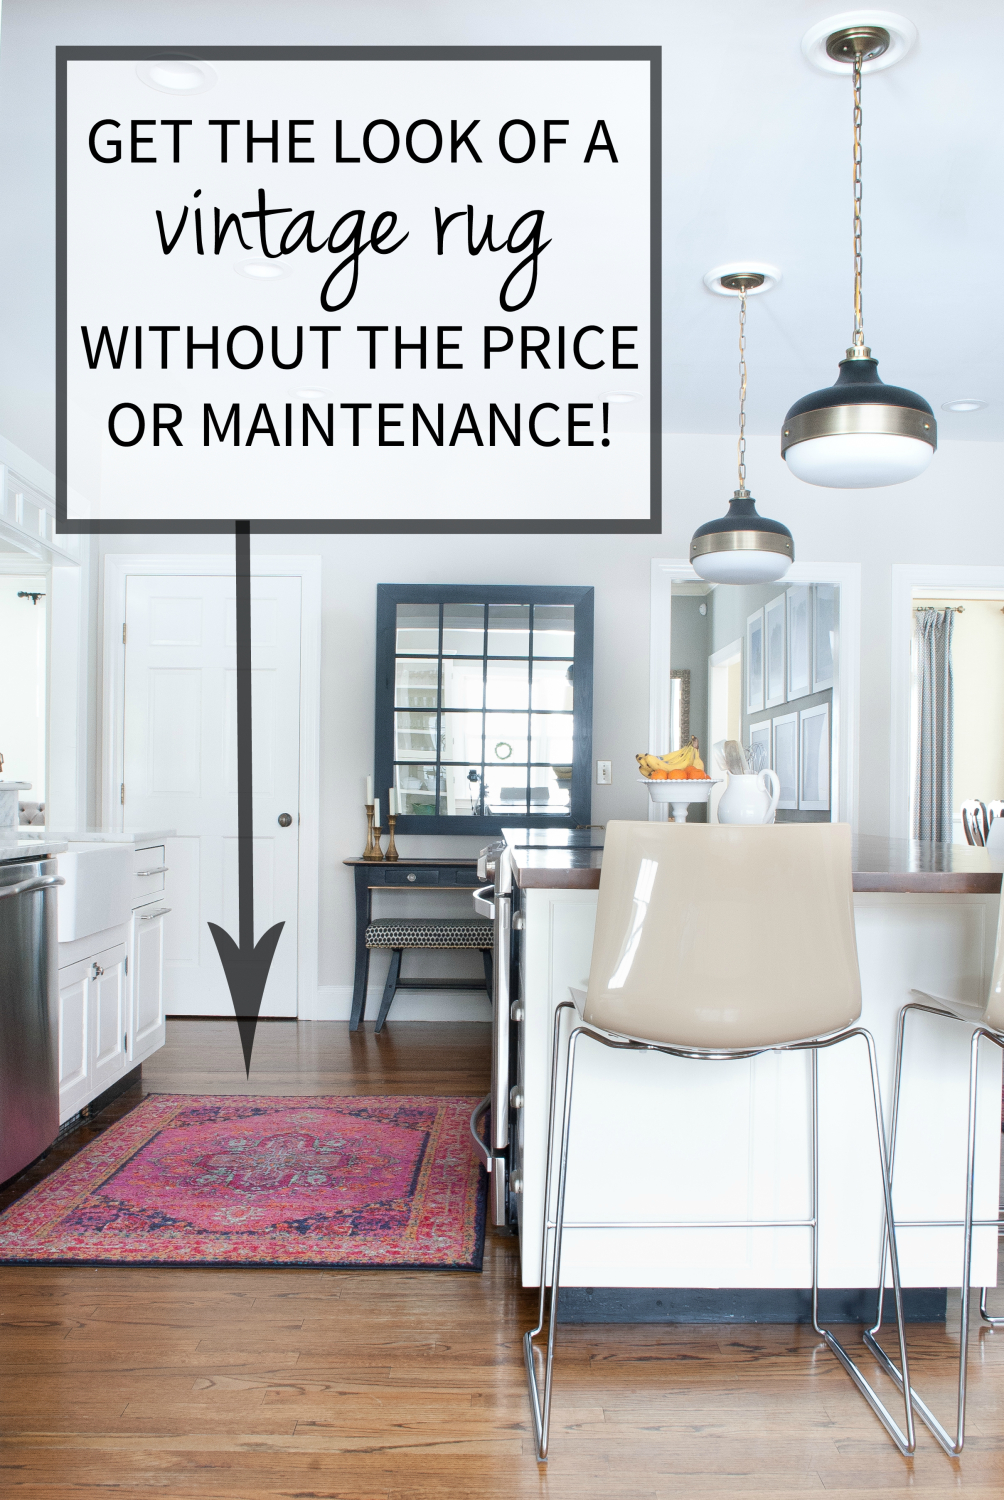 Get the look of a vibrant vintage rug in the kitchen without the price tag, worry, or maintenance!